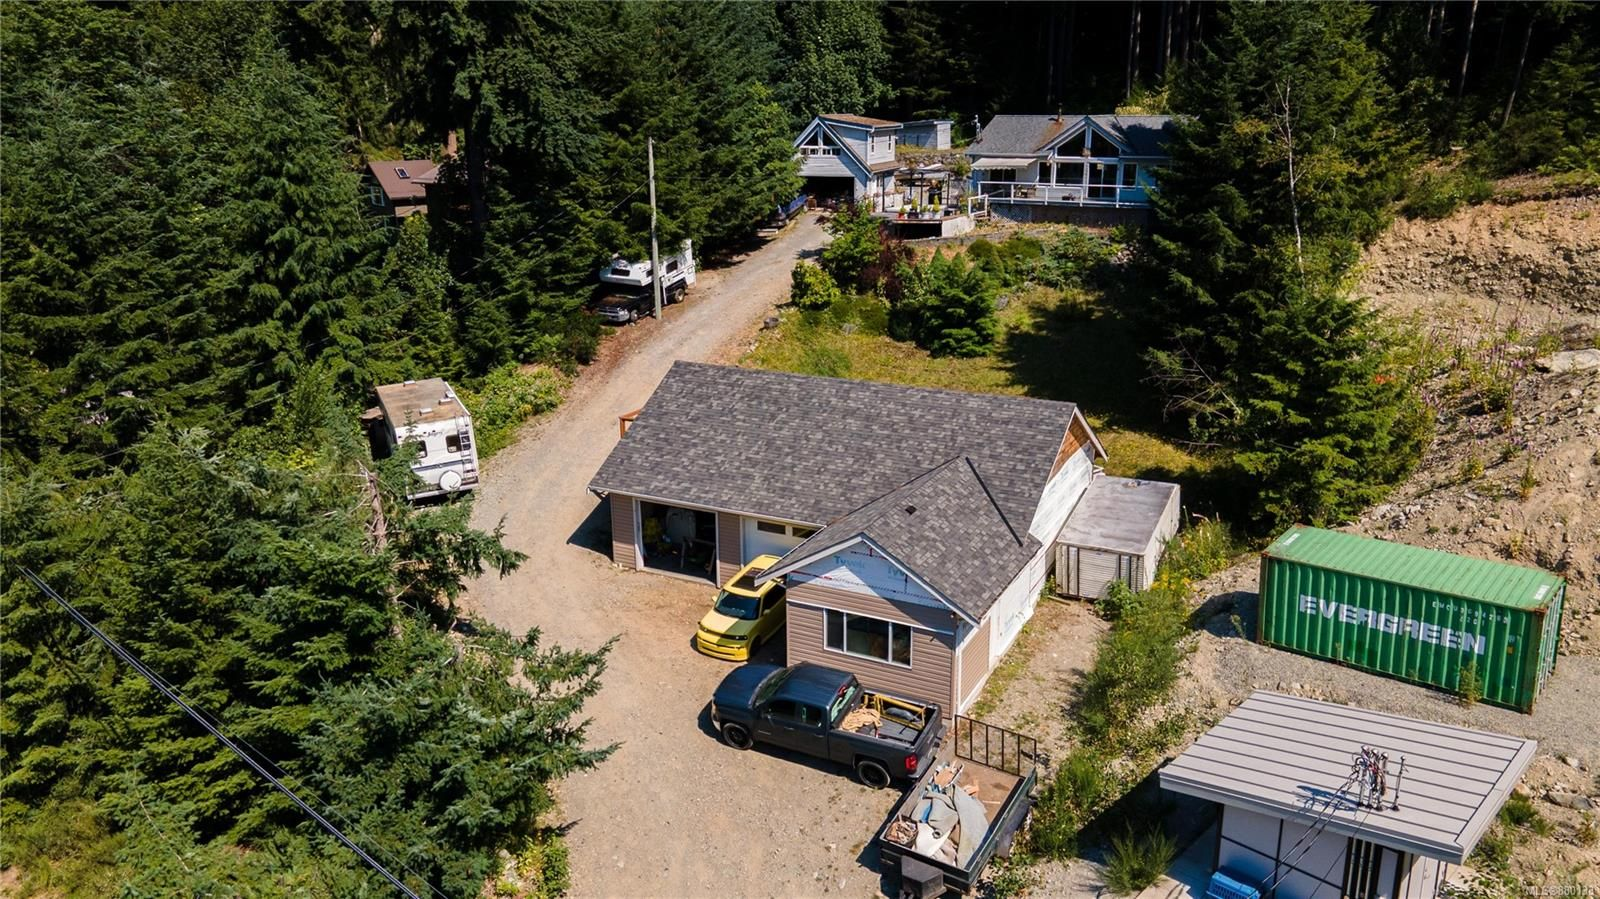 Main Photo: 9709 Youbou Rd in : Du Youbou House for sale (Duncan)  : MLS®# 880133